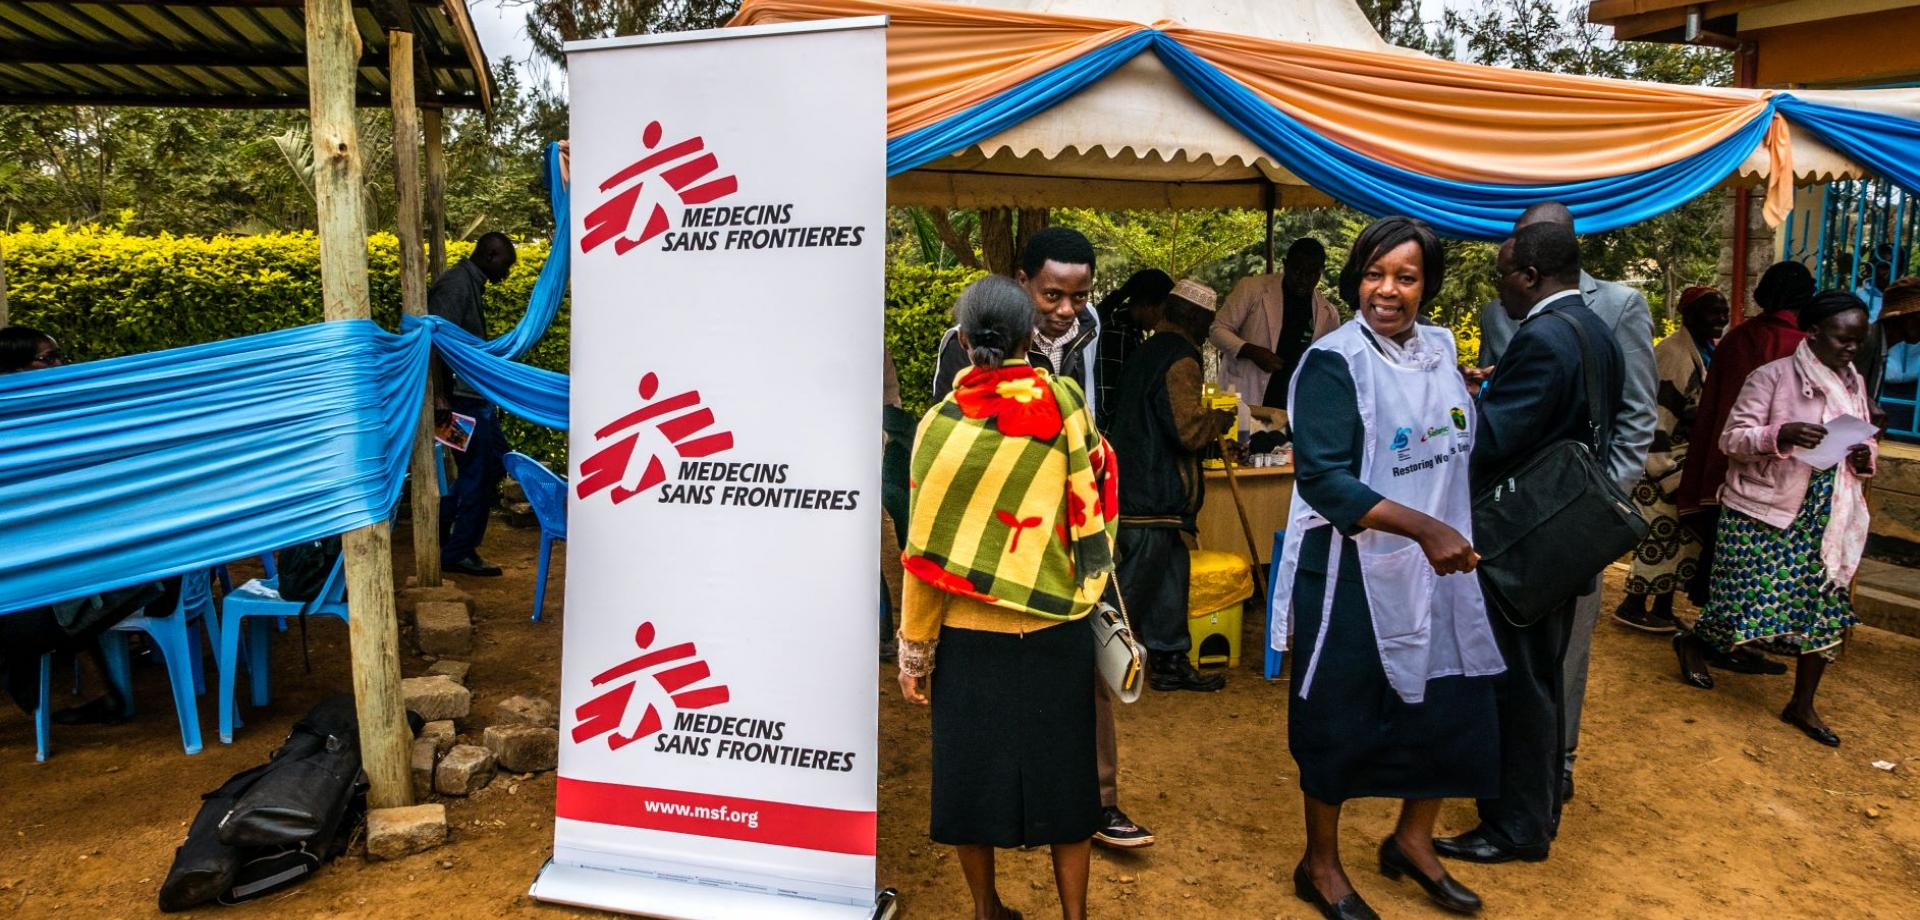 MSF at the medical camp